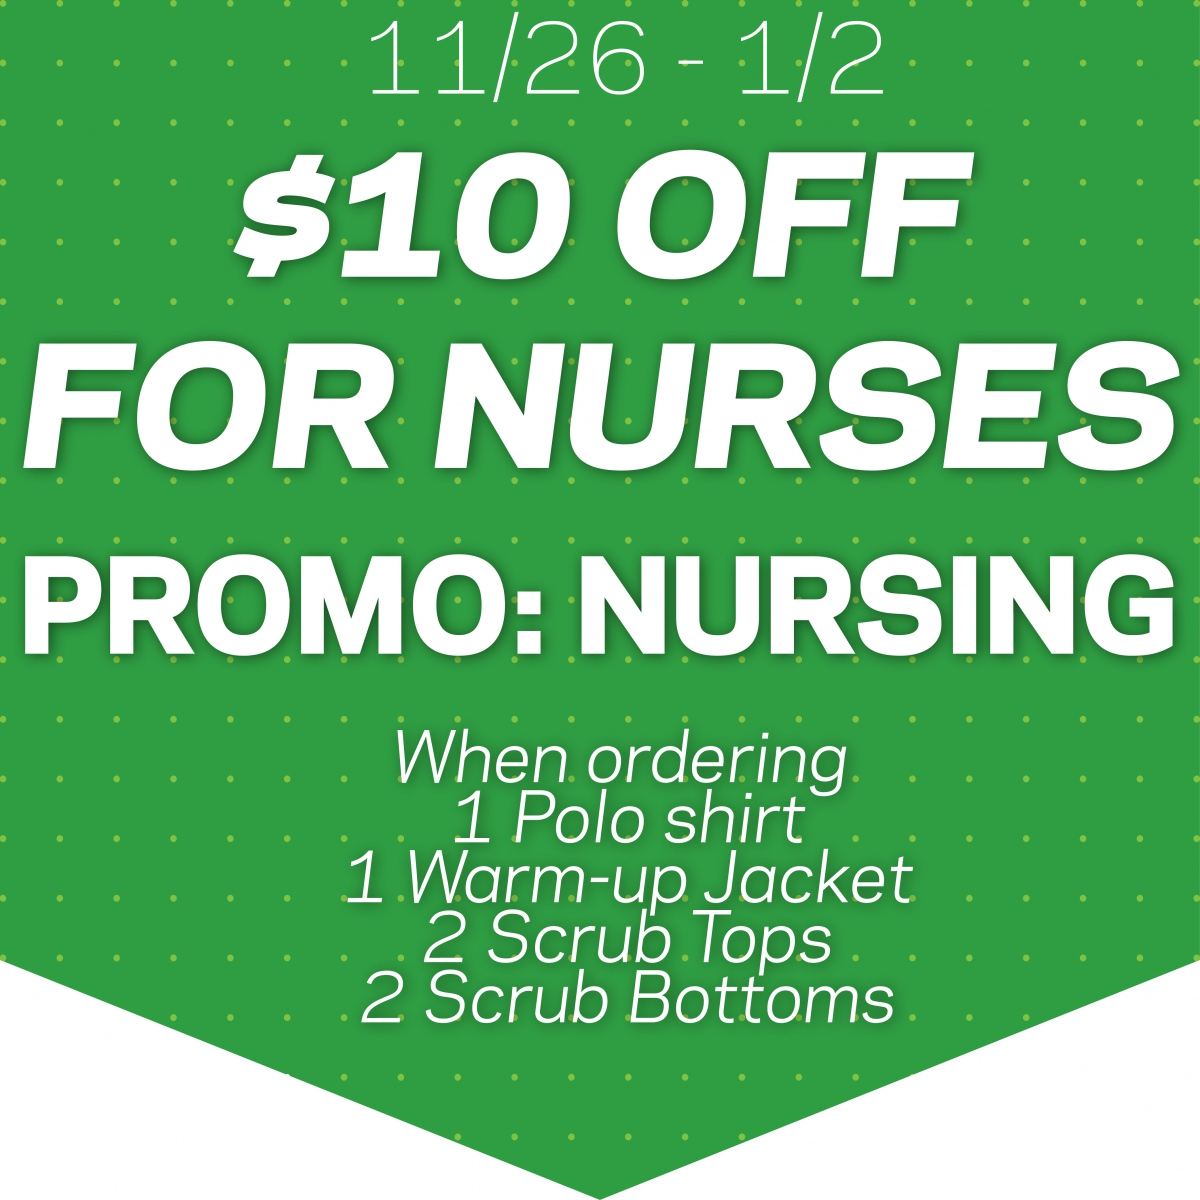 Nursing_Website_Buttons-01.jpg